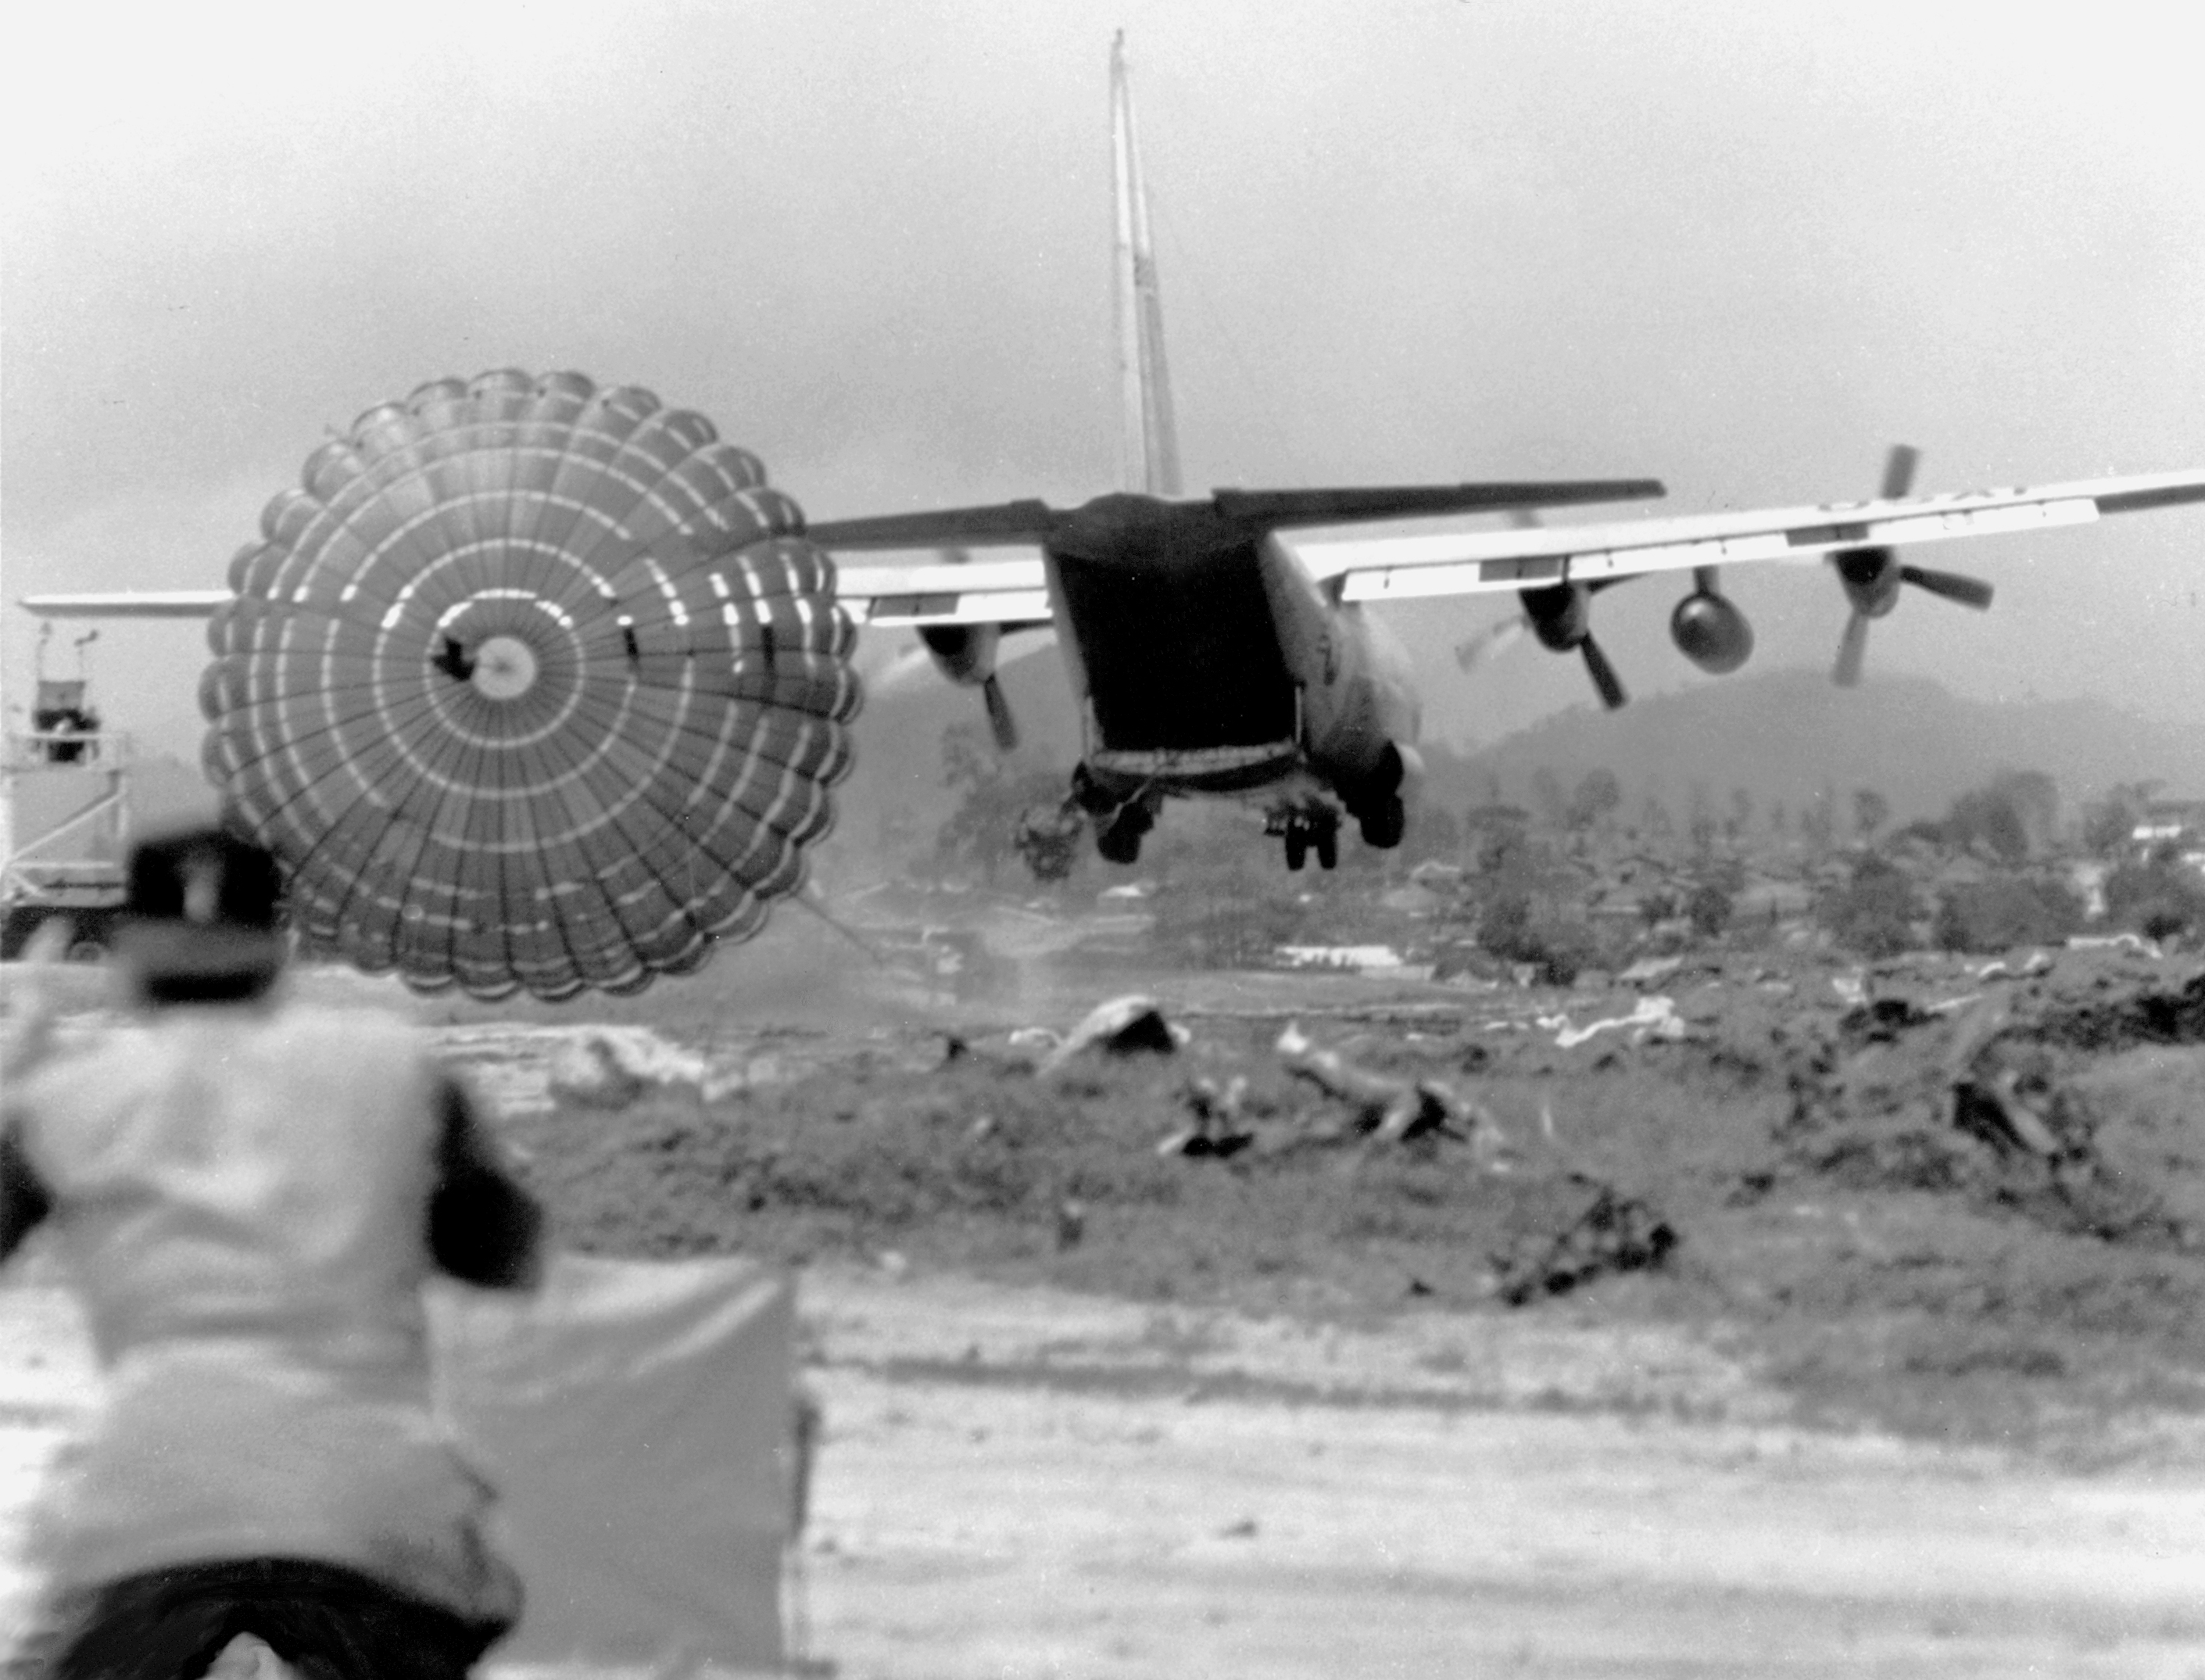 425cea0edc0d8 Airlift During the Vietnam War - Air Mobility Command Museum